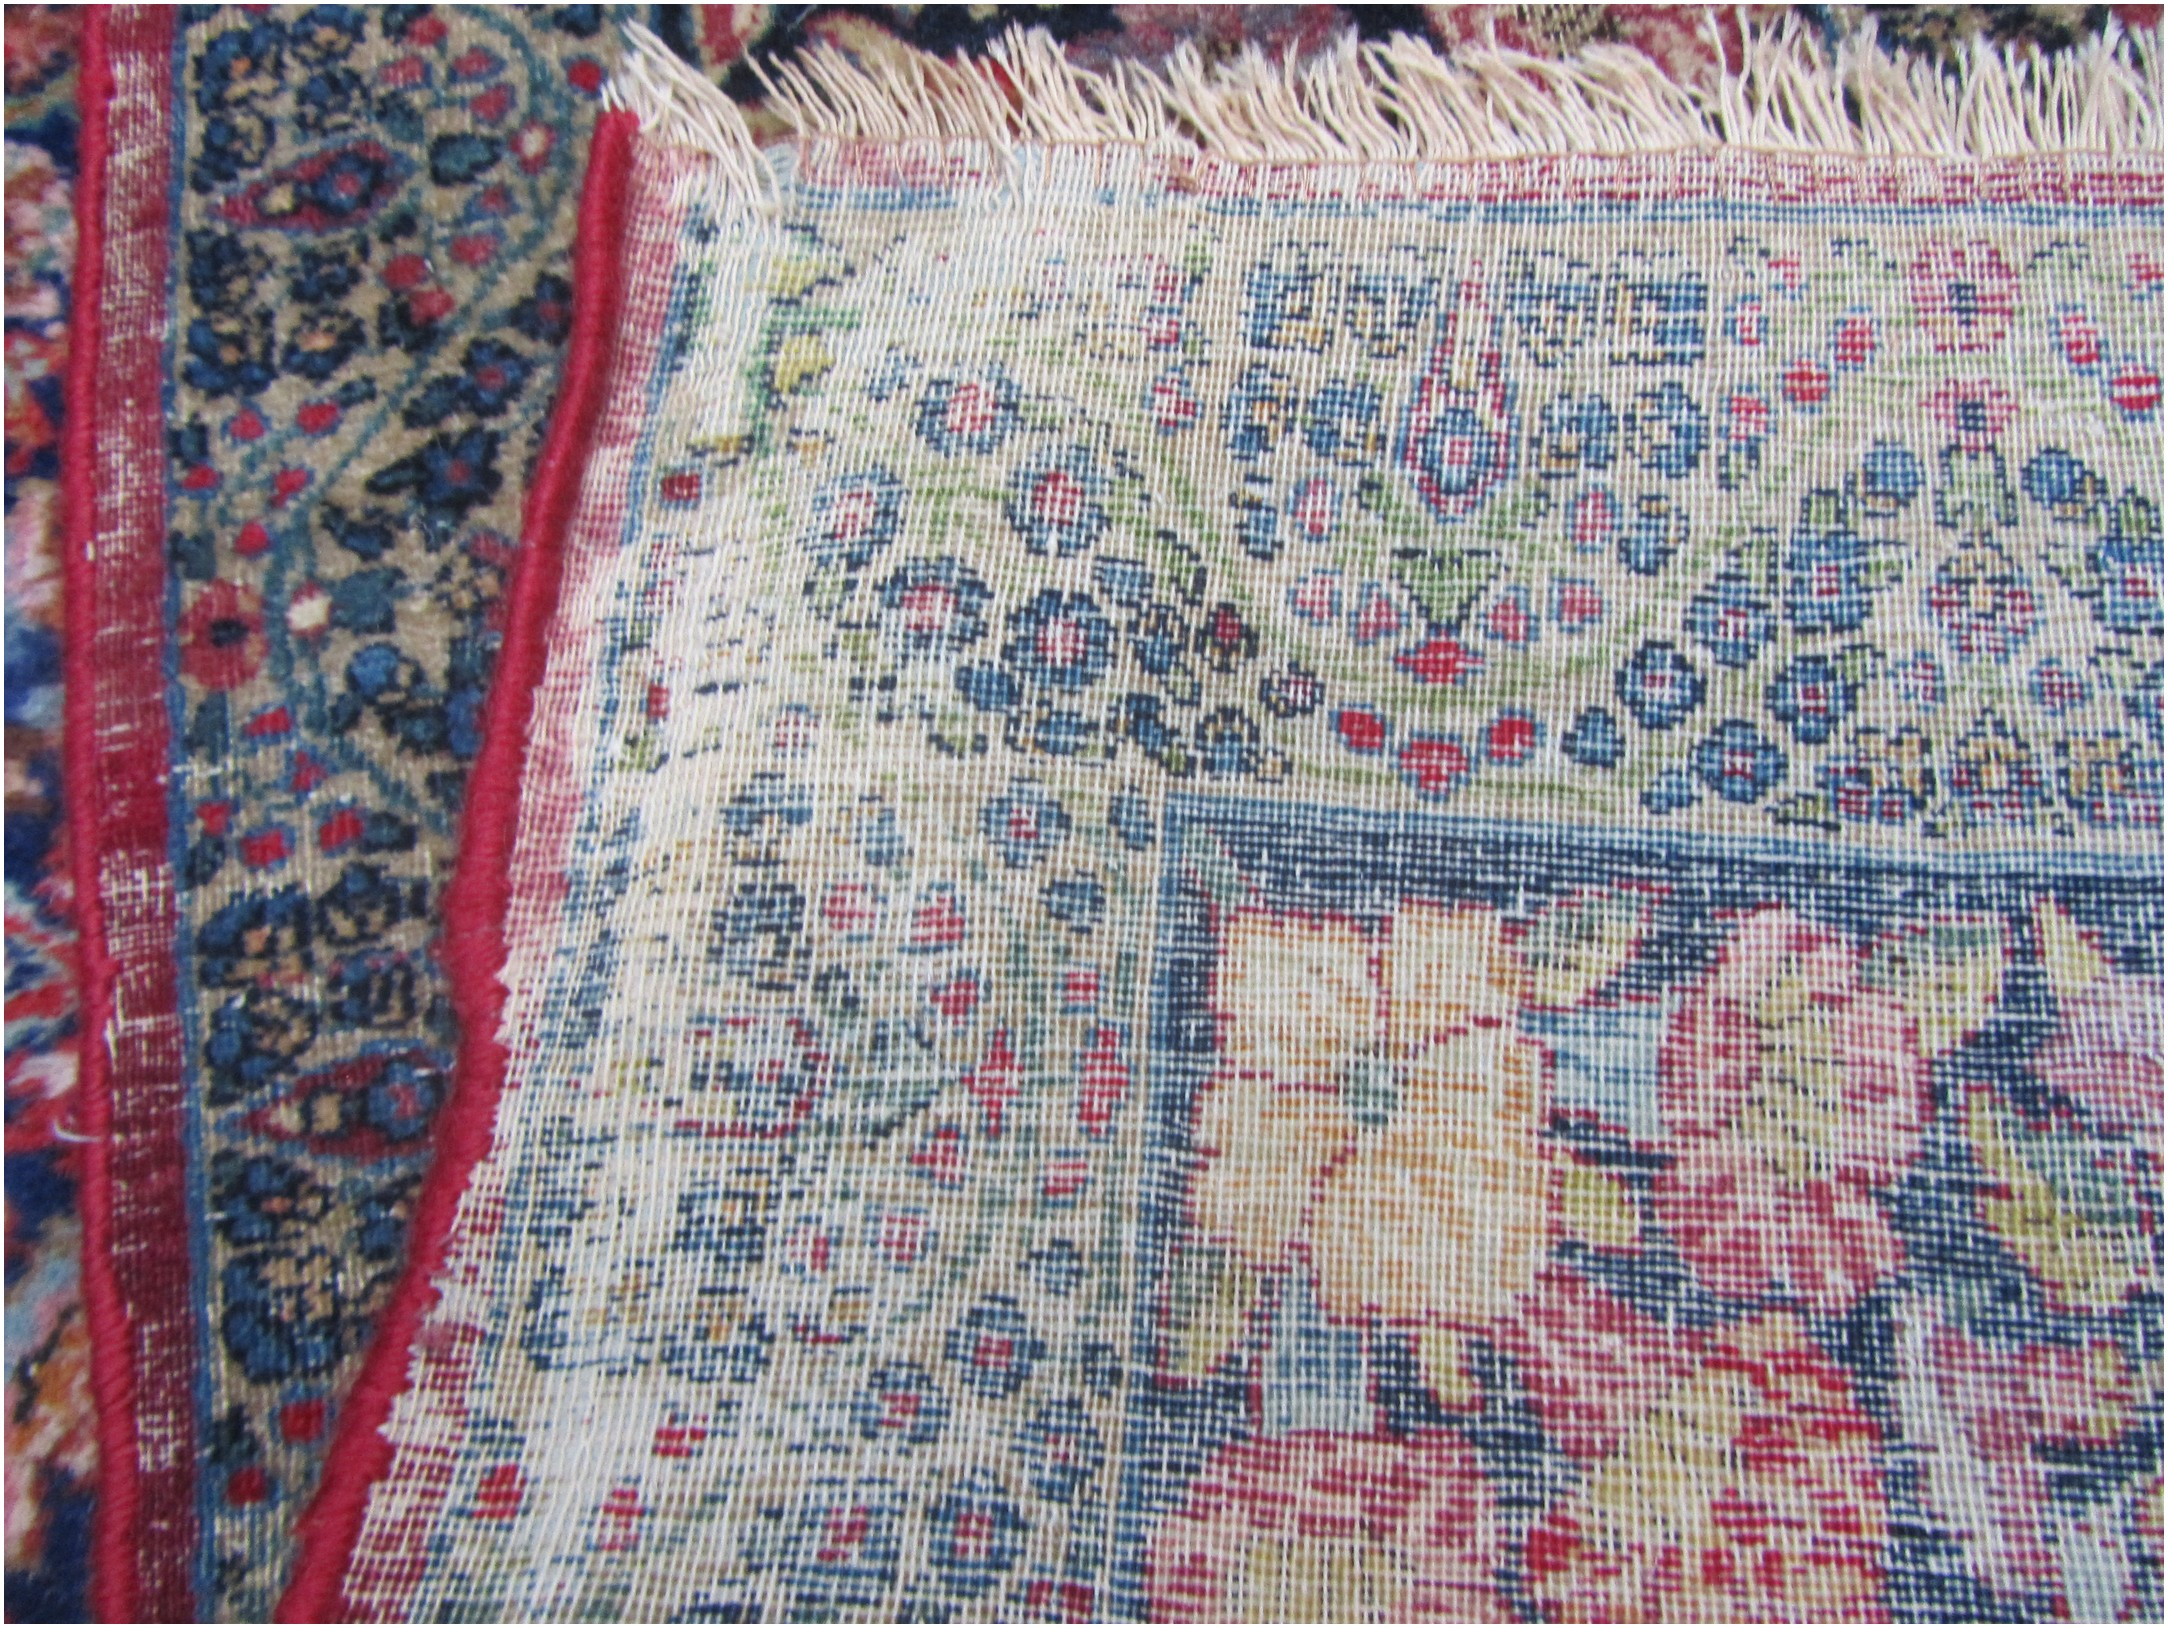 The moth damage is visible from the back of the rug.